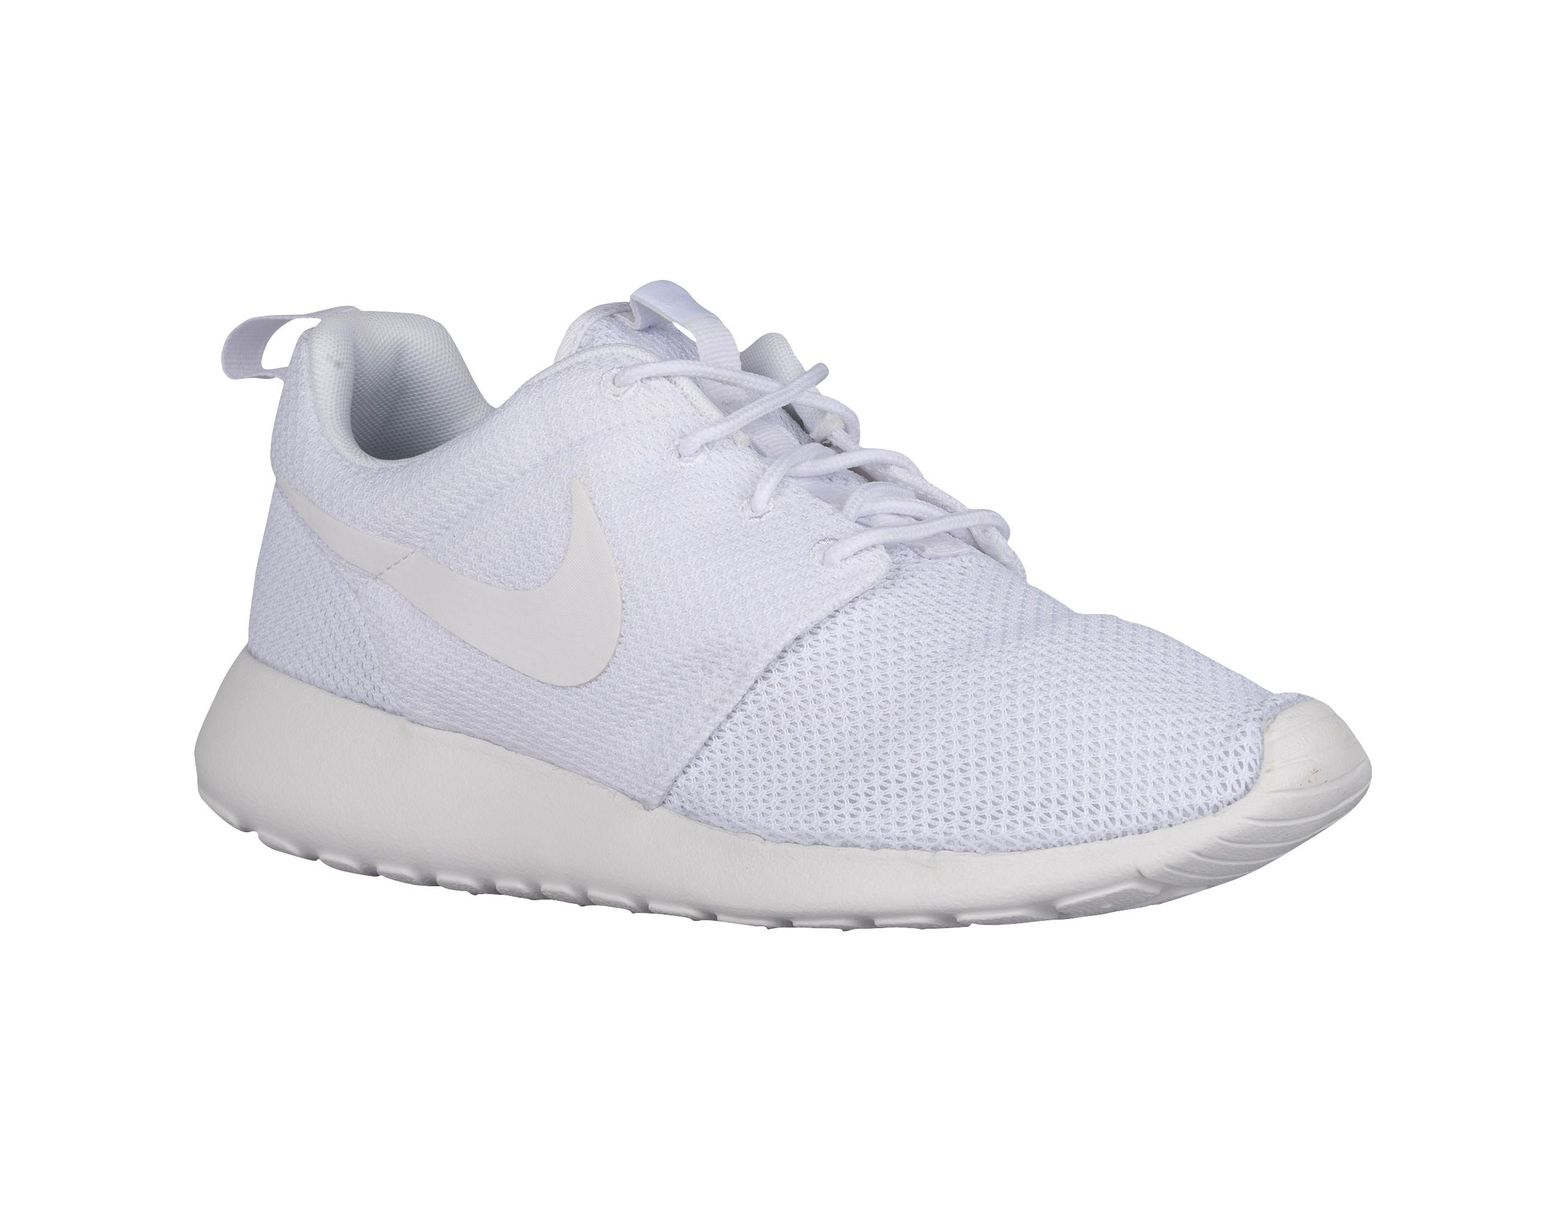 new products 984d9 73655 Nike - Multicolor Roshe One Running Shoes - Lyst